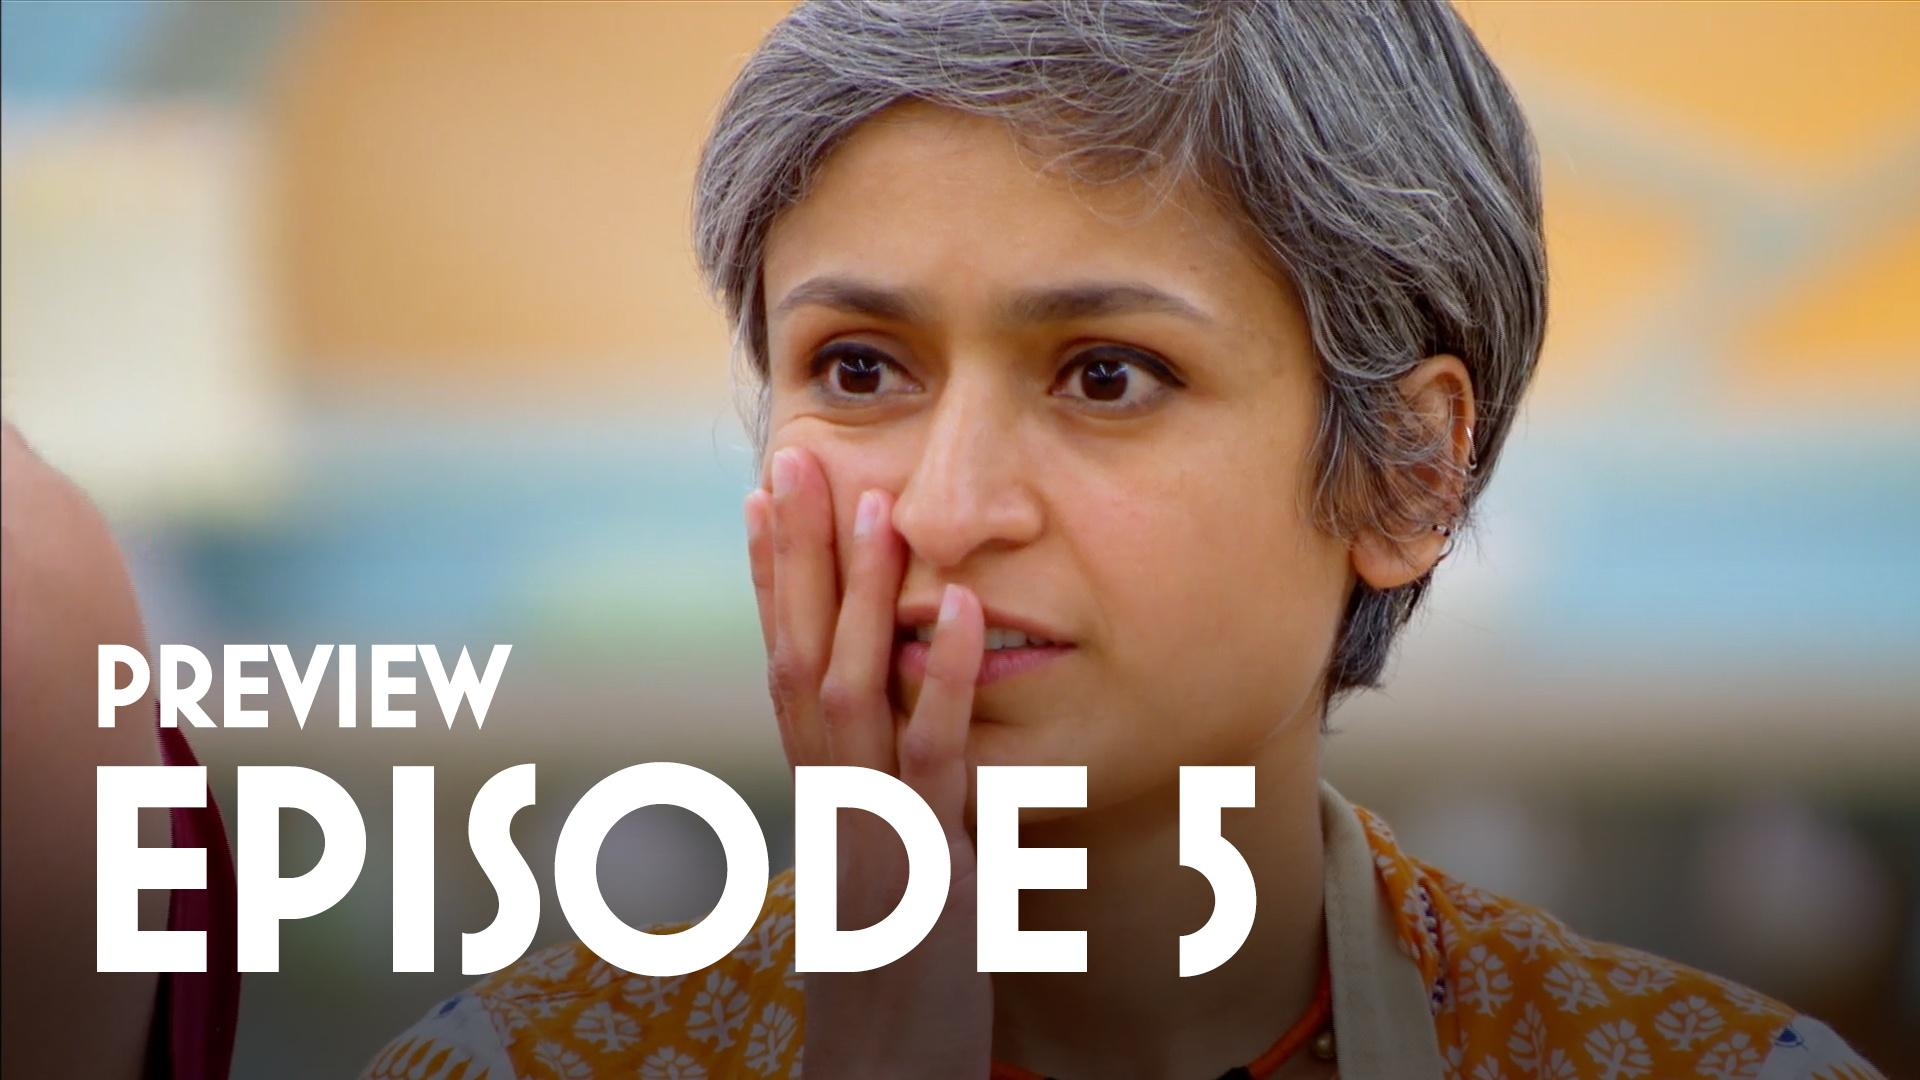 Video: S1 Ep5: Preview: Pies & Tarts | Watch The Great ...